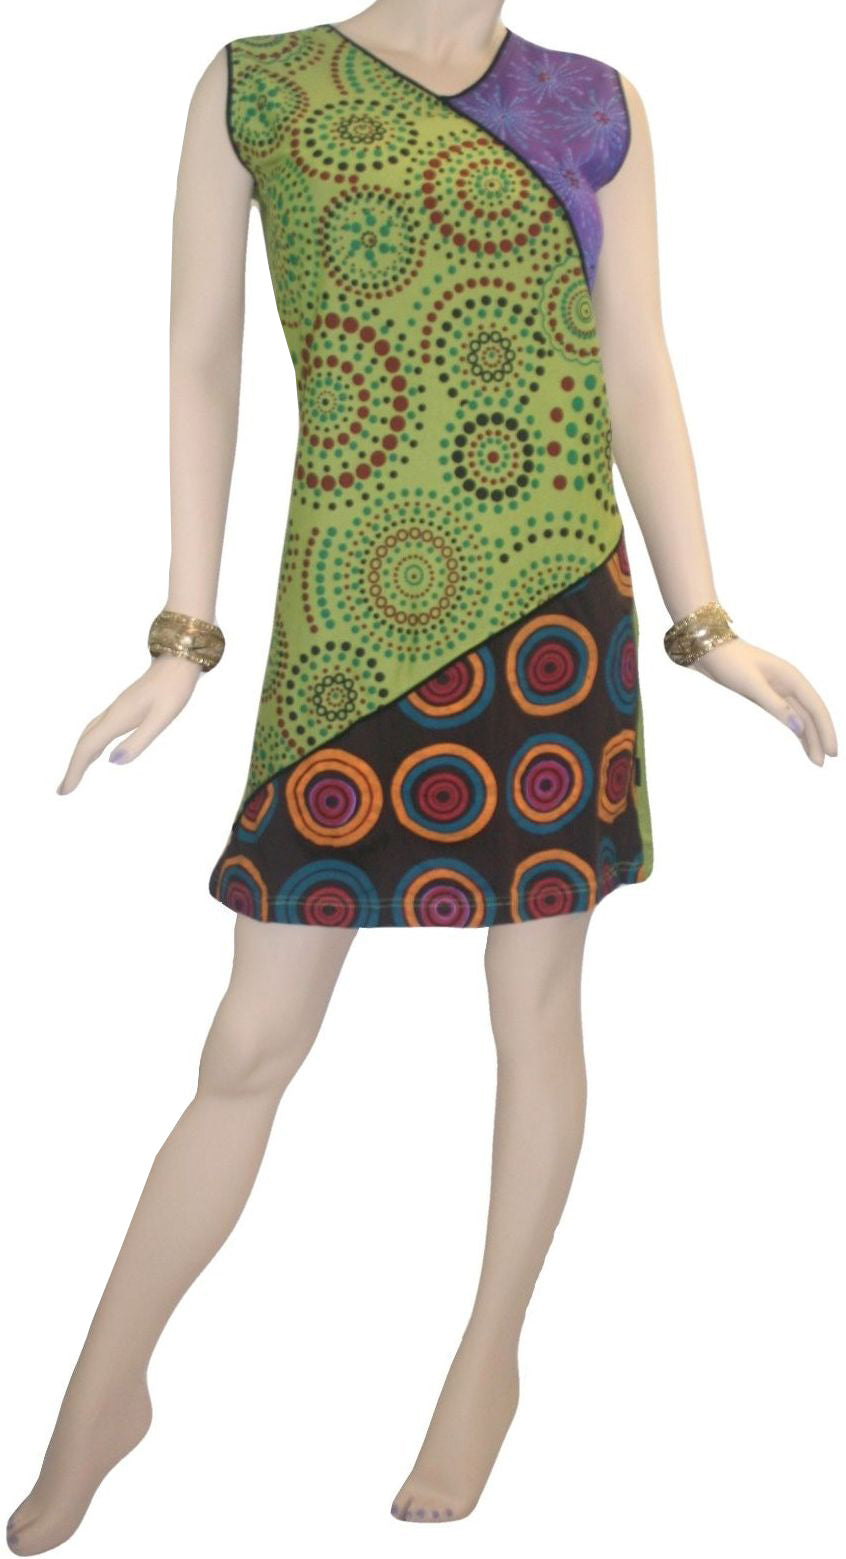 RD 12 Agan Traders Nepal Bohemian Knit Light Weight Cotton Mid Length Summer Dress - Agan Traders, RDR Multi 12